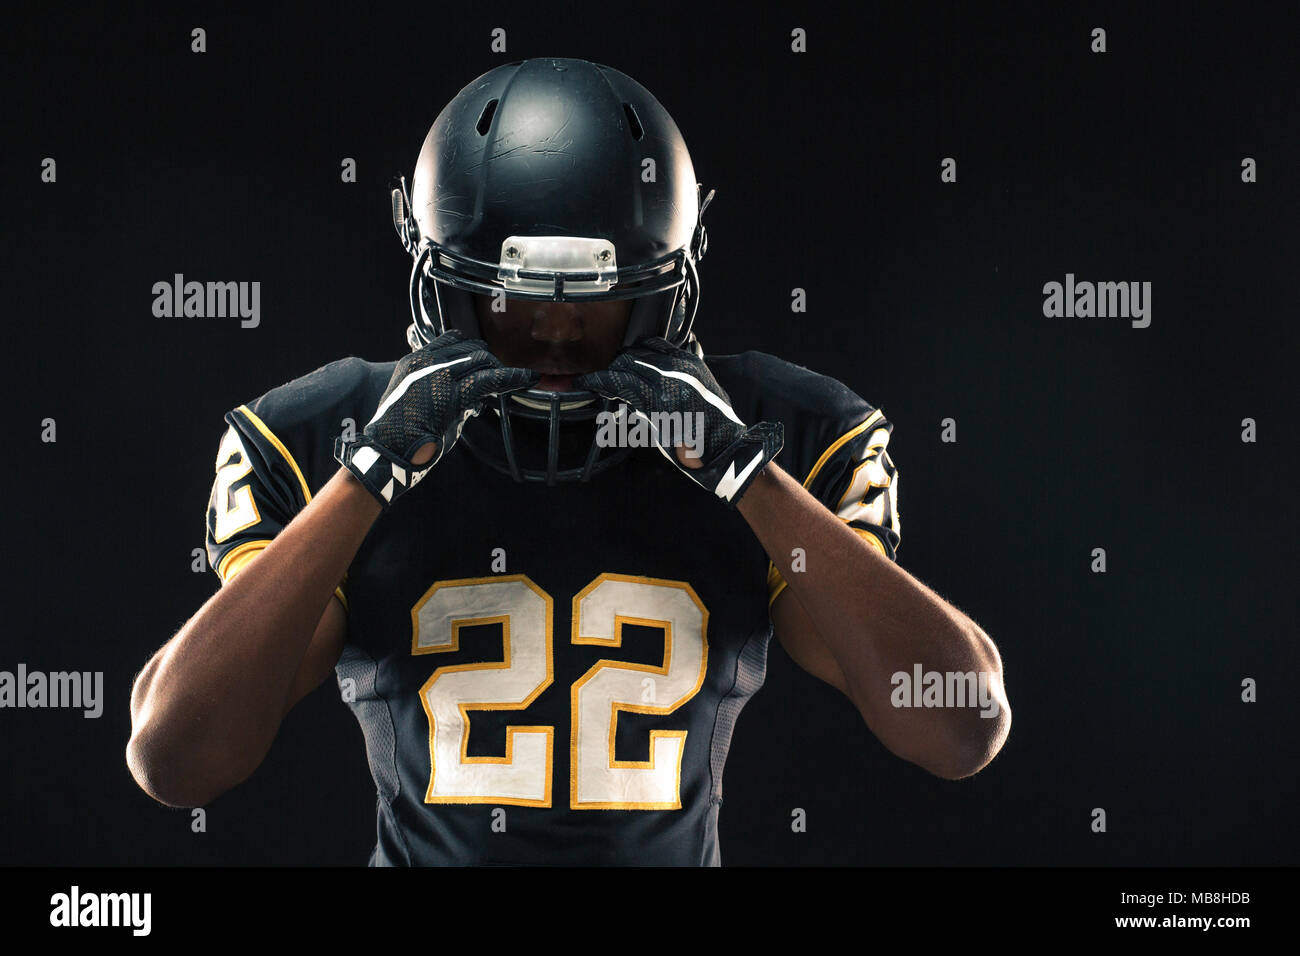 African American football player. Photo Stock